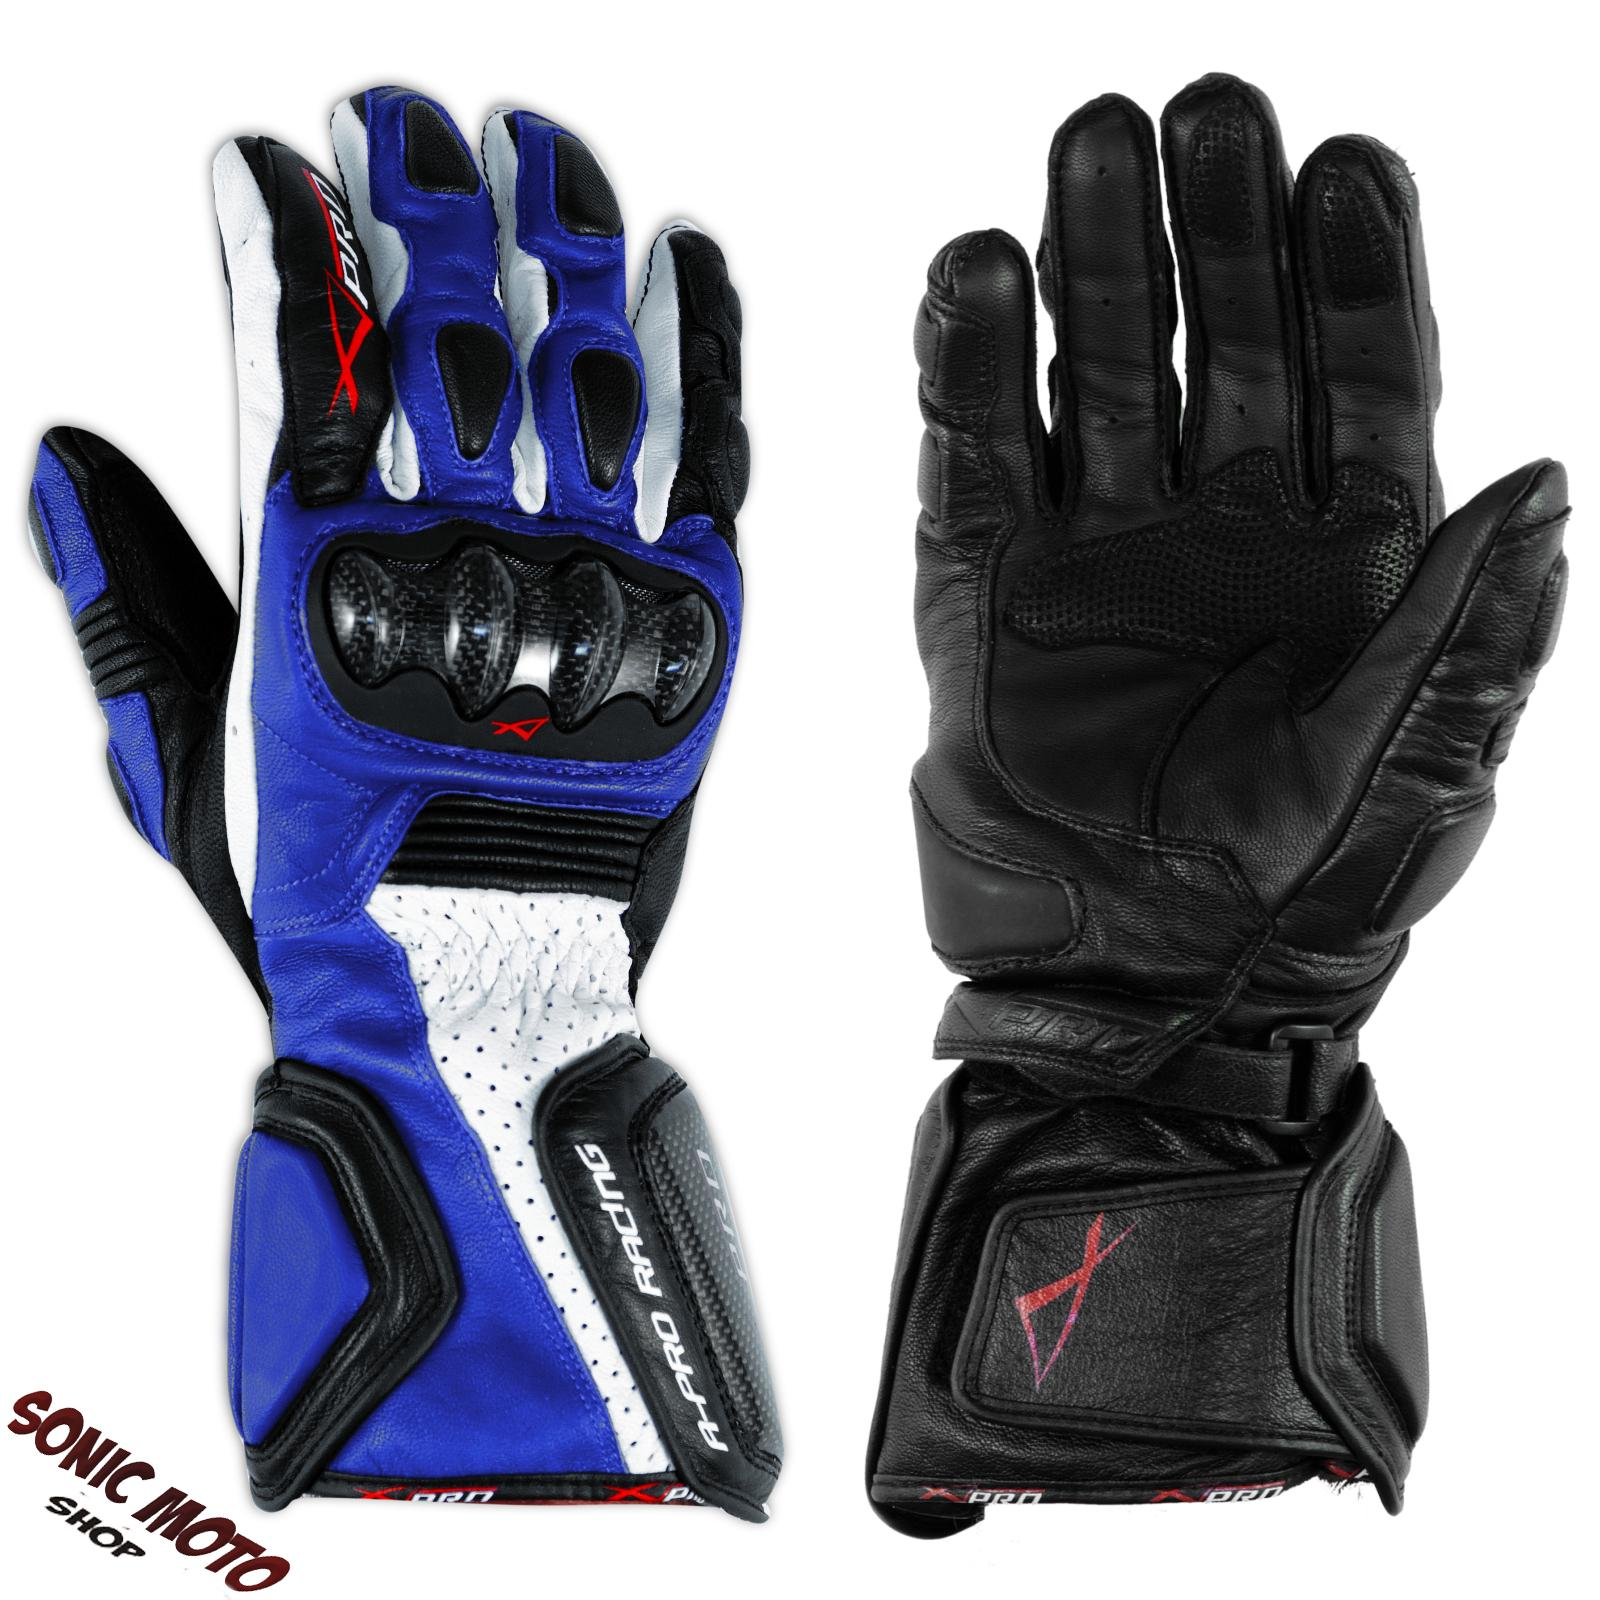 Motorcycle-Motorbike-Racing-Sports-Leather-Riding-Gloves-Protection-Blue-M